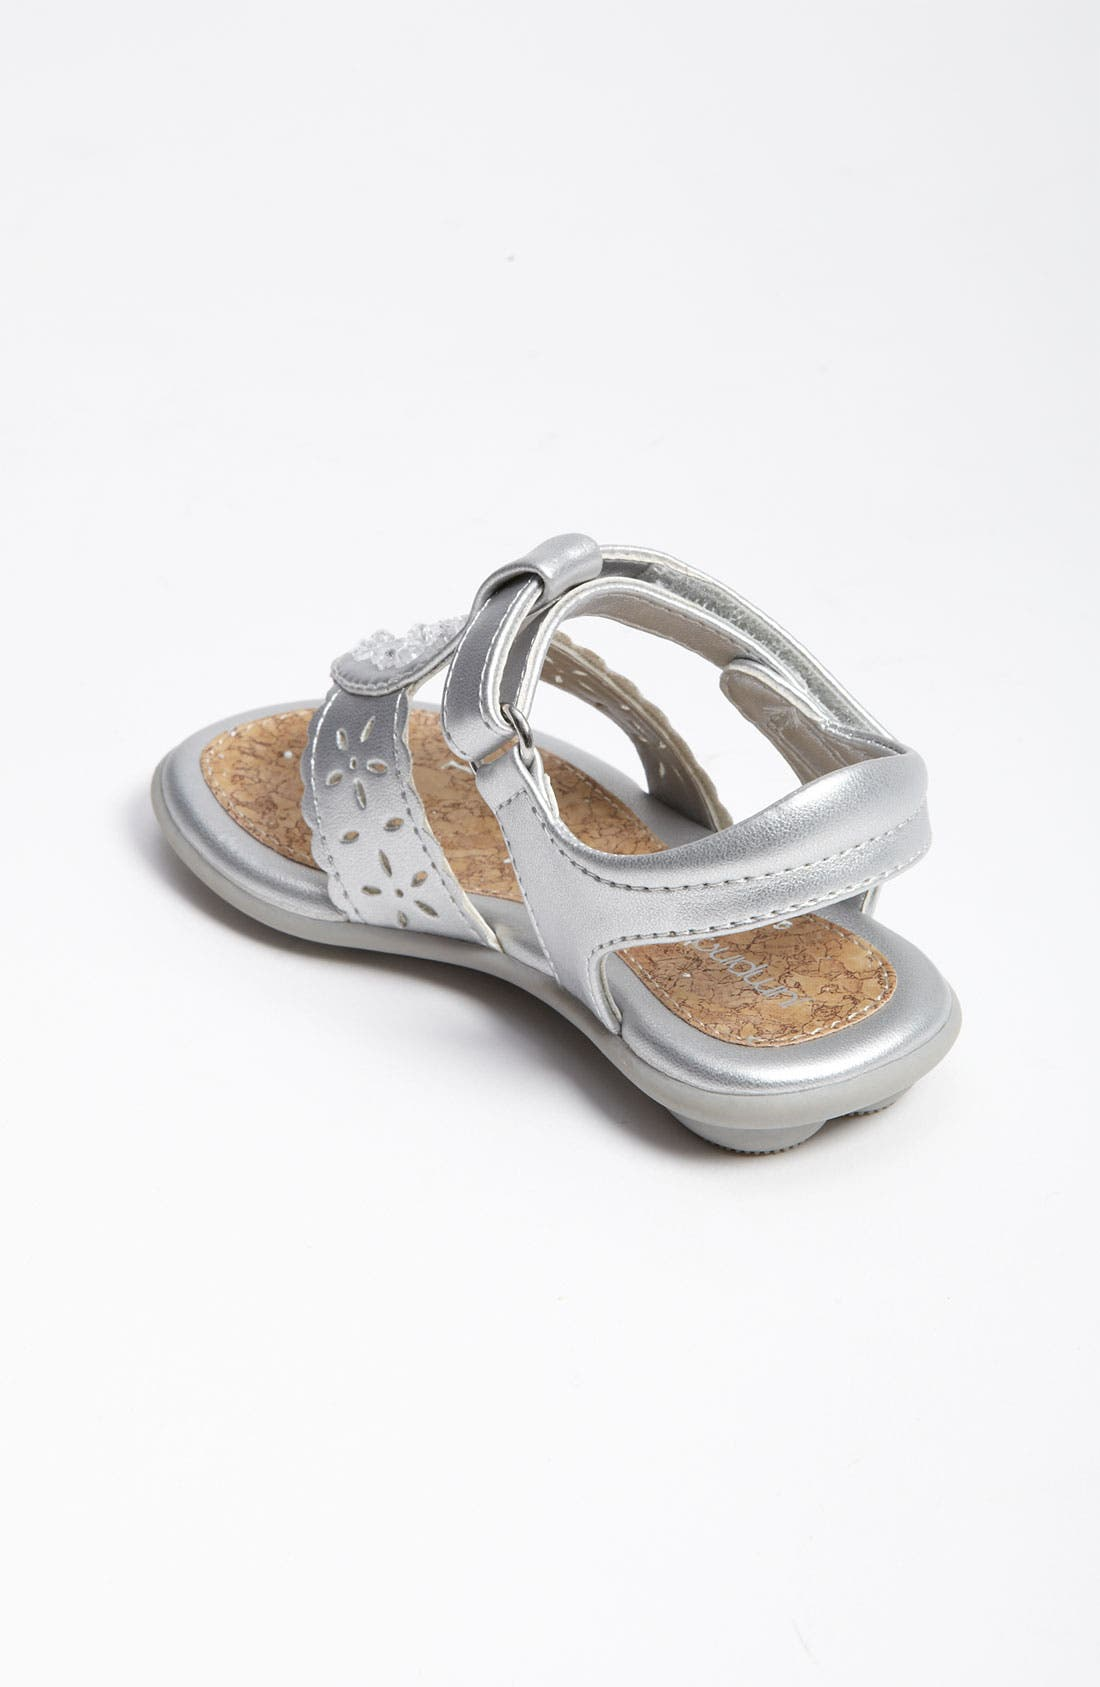 Alternate Image 2  - Jumping Jacks 'Christy' Sandal (Walker, Toddler, Little Kid & Big Kid)